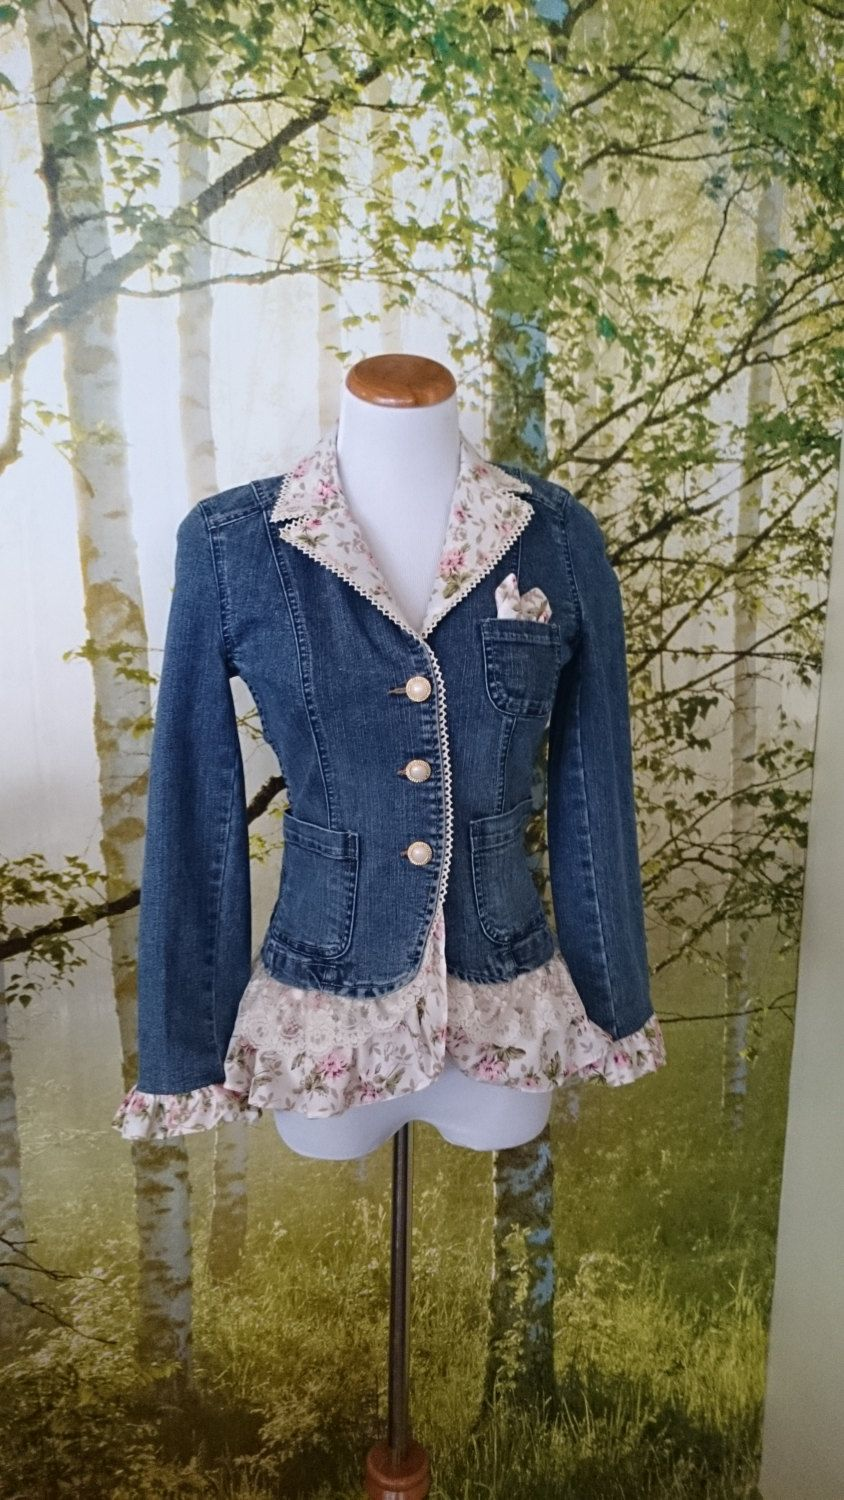 women 39 s denim jacket embellished with ruffles and lace. Black Bedroom Furniture Sets. Home Design Ideas